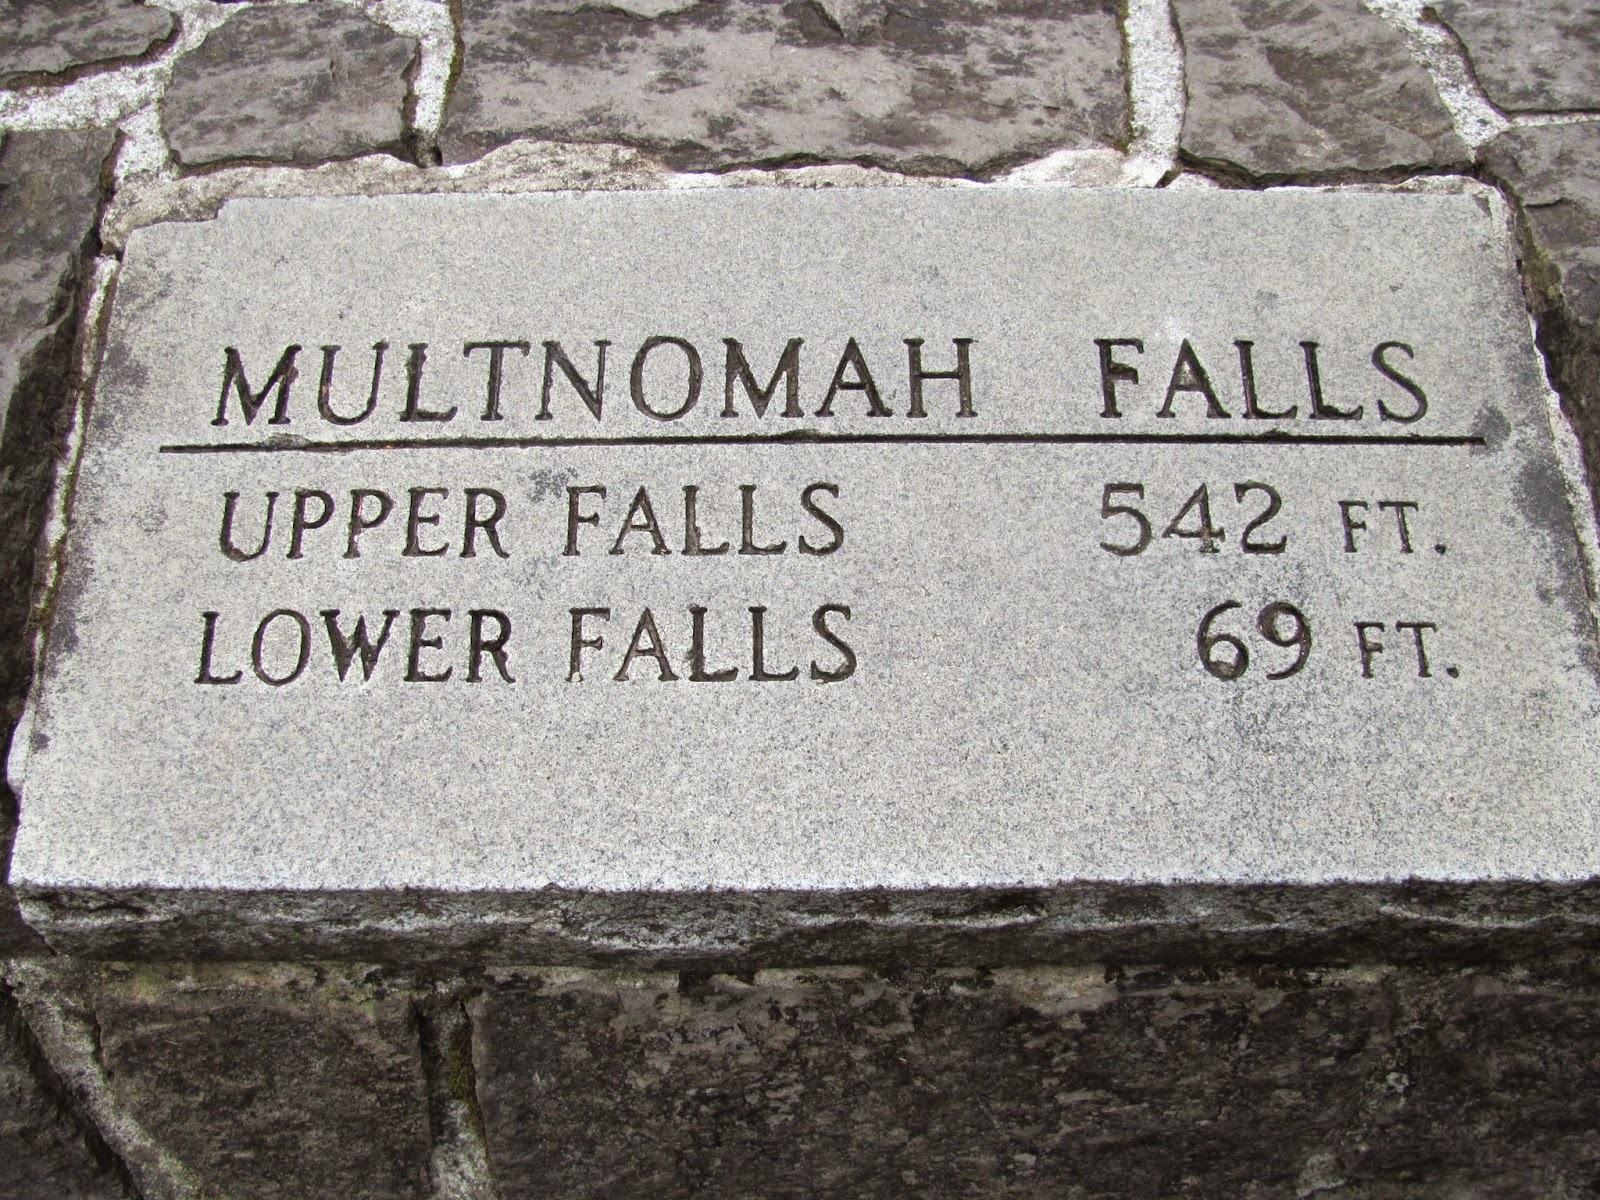 Multnomah Falls sign near Portland, Oregon